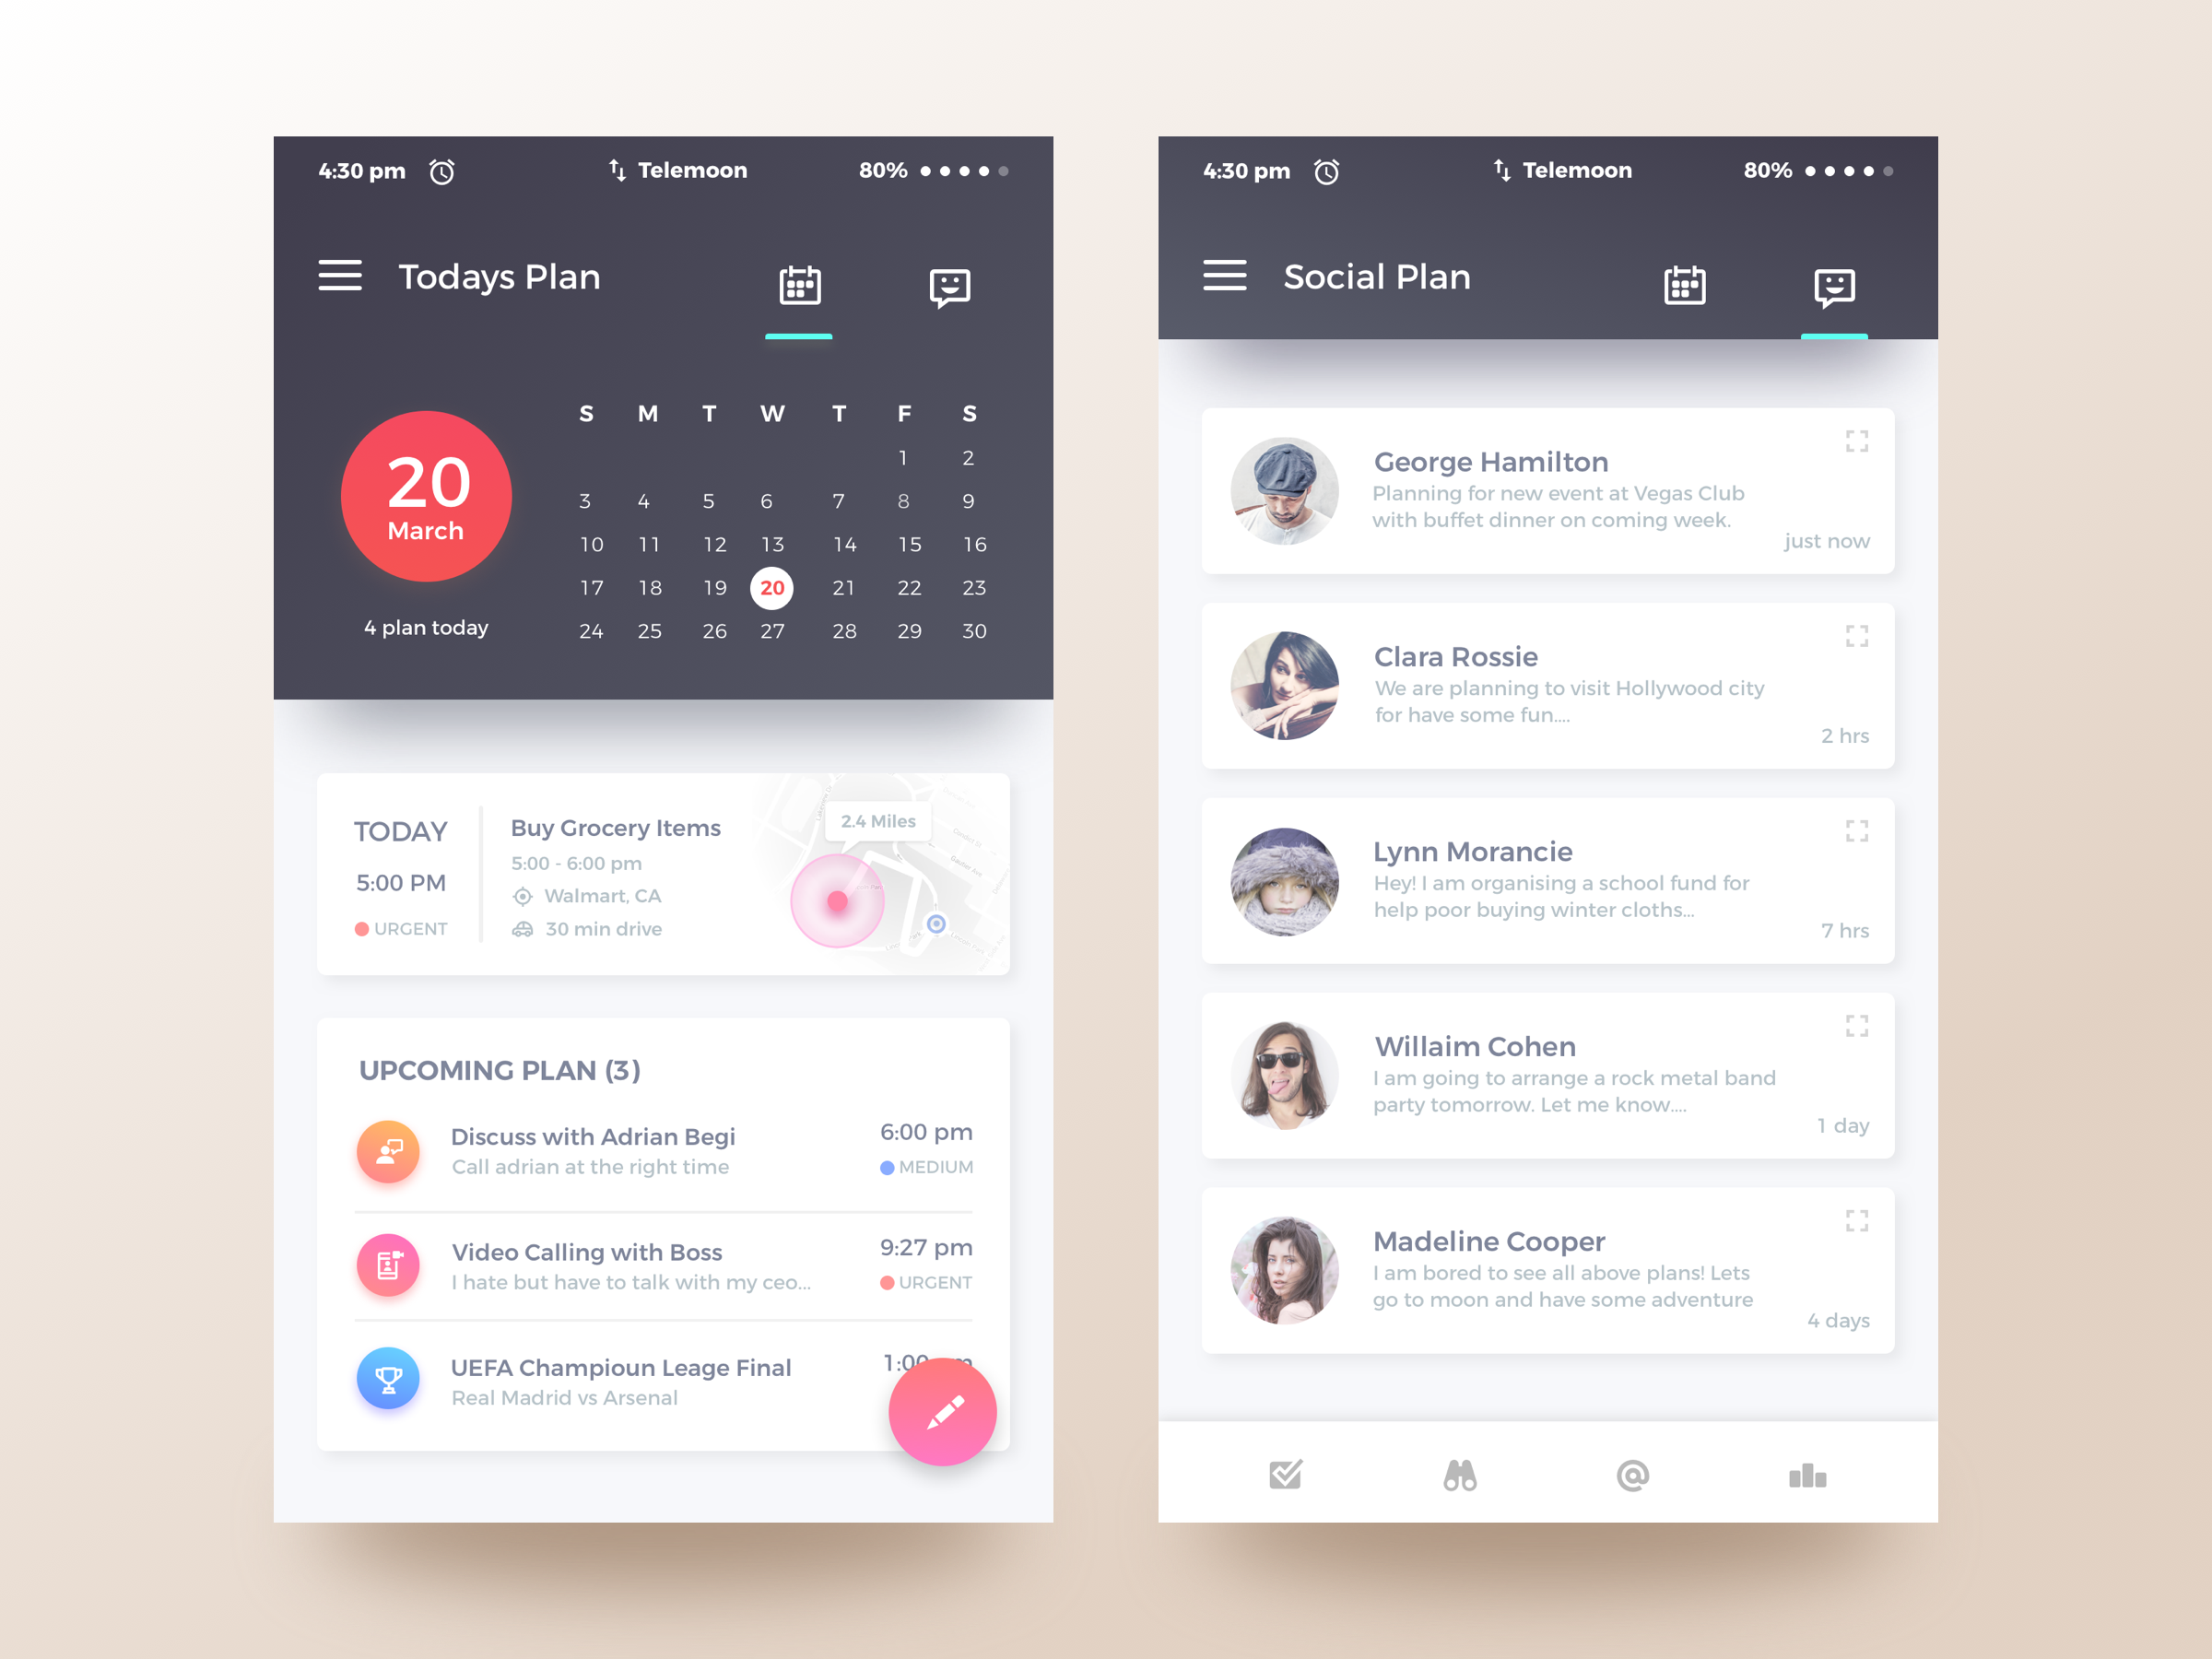 Ui Design Ideas another version copy cool minimalistic clean website layout design inspiration ui ux design Find This Pin And More On Ios Design Patterns